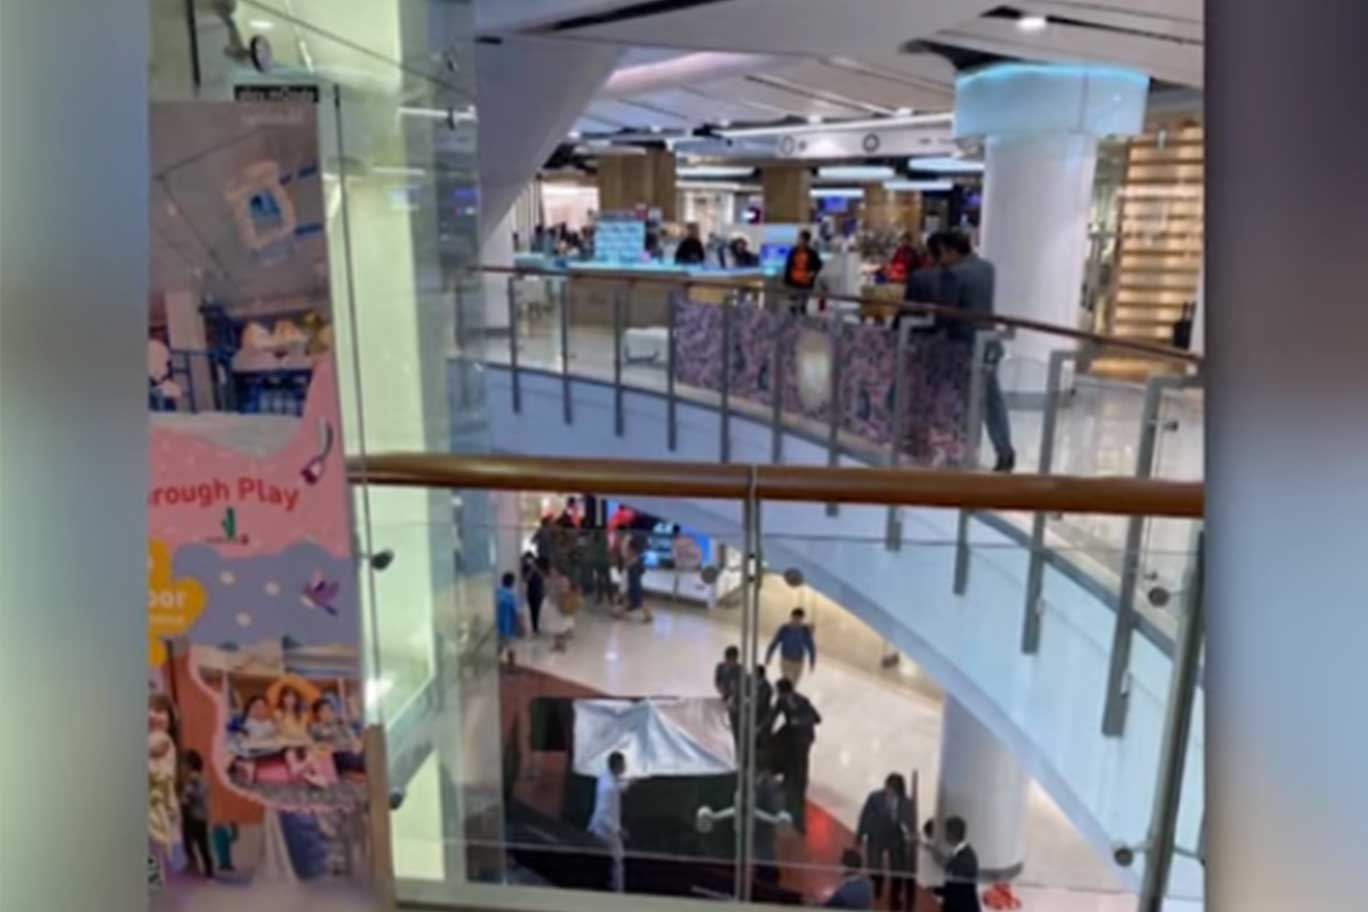 A boy was seriously injured when he fell from a third-floor escalator inside the CentralWorld shopping complex. (Capture from TV Channel 8)